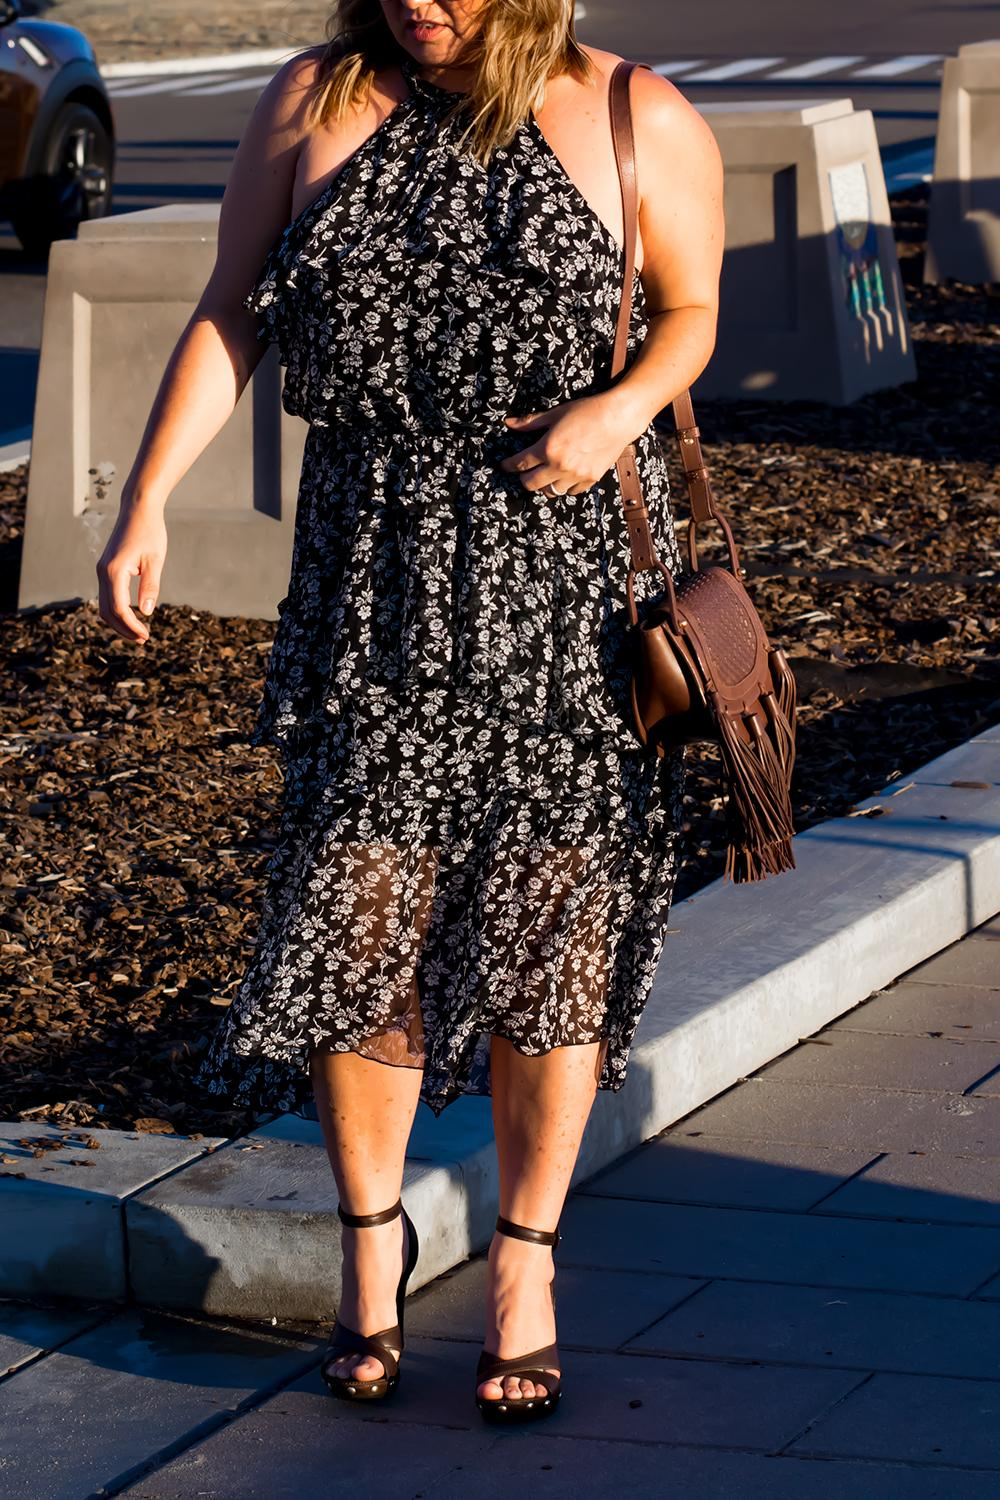 Tiered-Floral-Ruffle-Dress-The-Biggest-Summer-Trends-for-2017-Barefoot-in-LA-Fashion-Blog-Style-Ideas-Outfits-1202